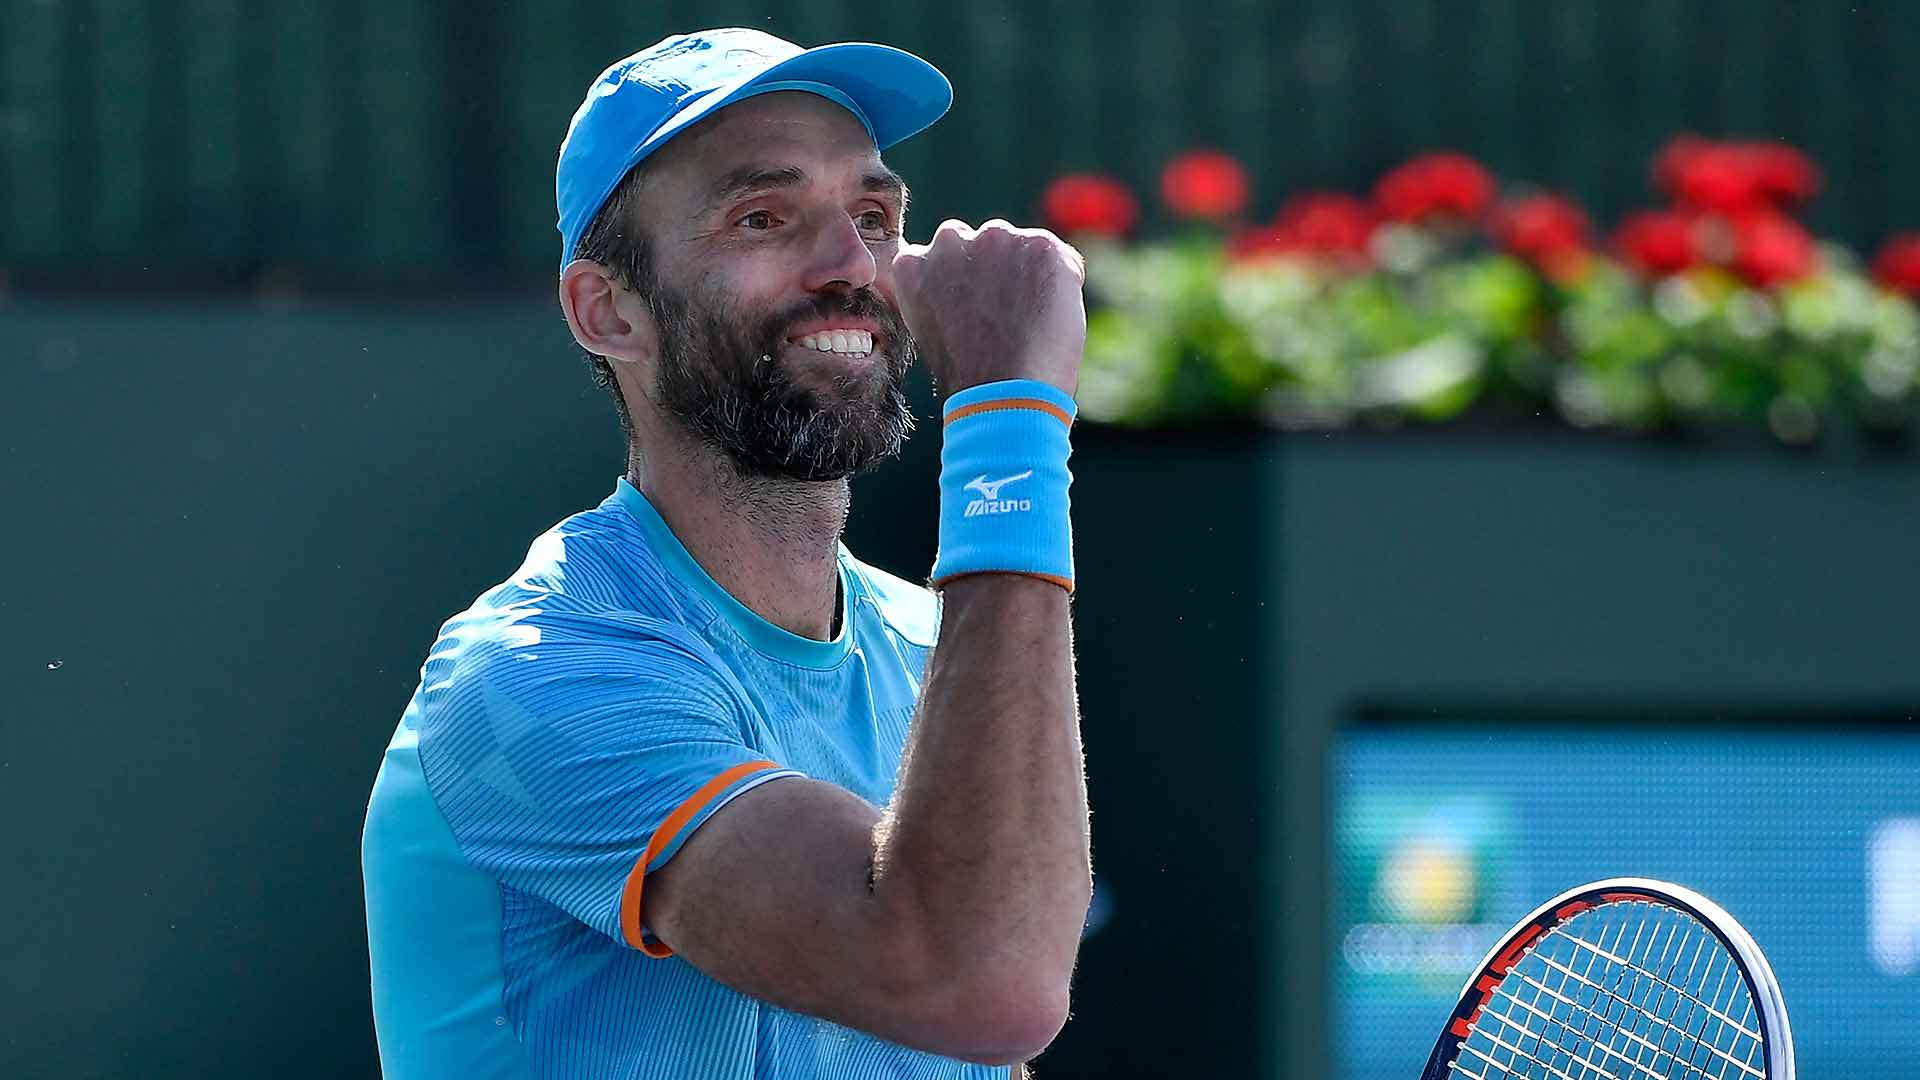 <a href='https://www.atptour.com/en/players/ivo-karlovic/k336/overview'>Ivo Karlovic</a> sets records at the <a href='https://www.atptour.com/en/tournaments/indian-wells/404/overview'>BNP Paribas Open</a>